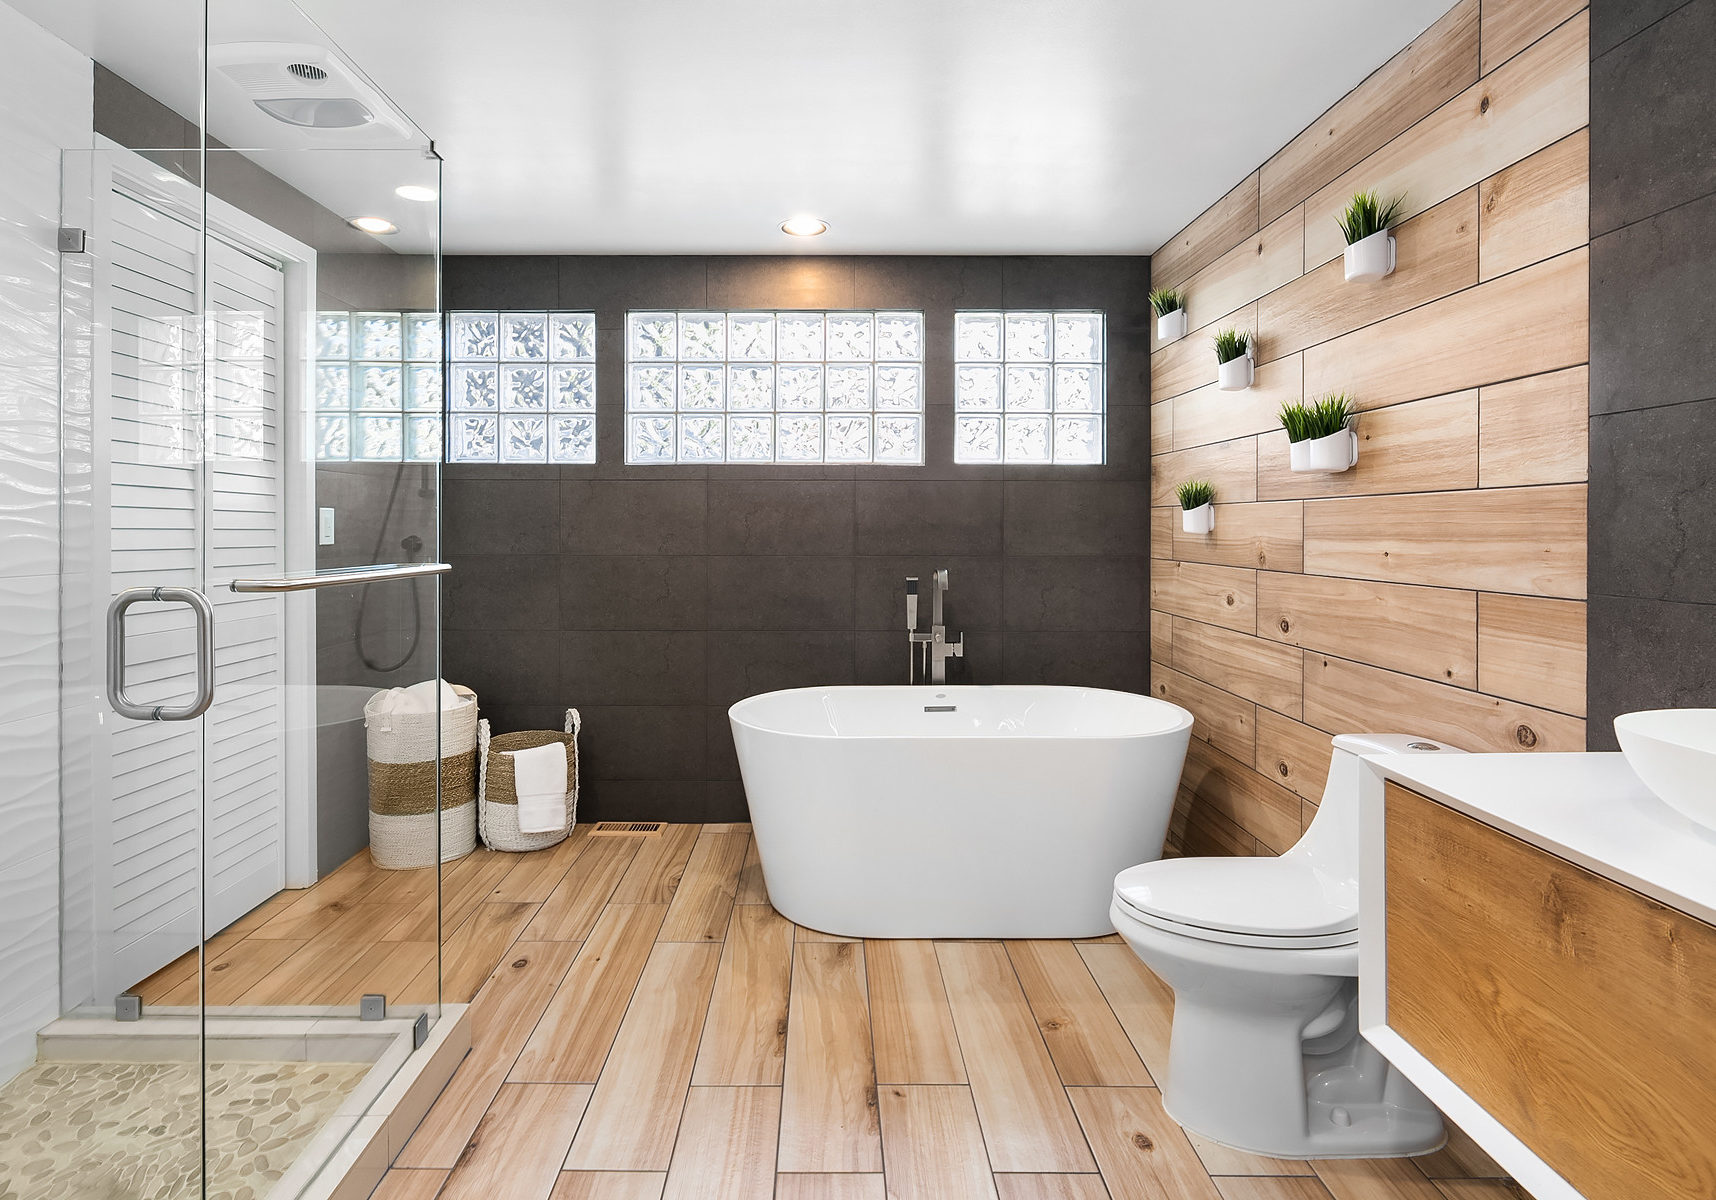 Celeste_5932_Square_Tub_Filler_BN_Primo_One_Piece_Toilet_1